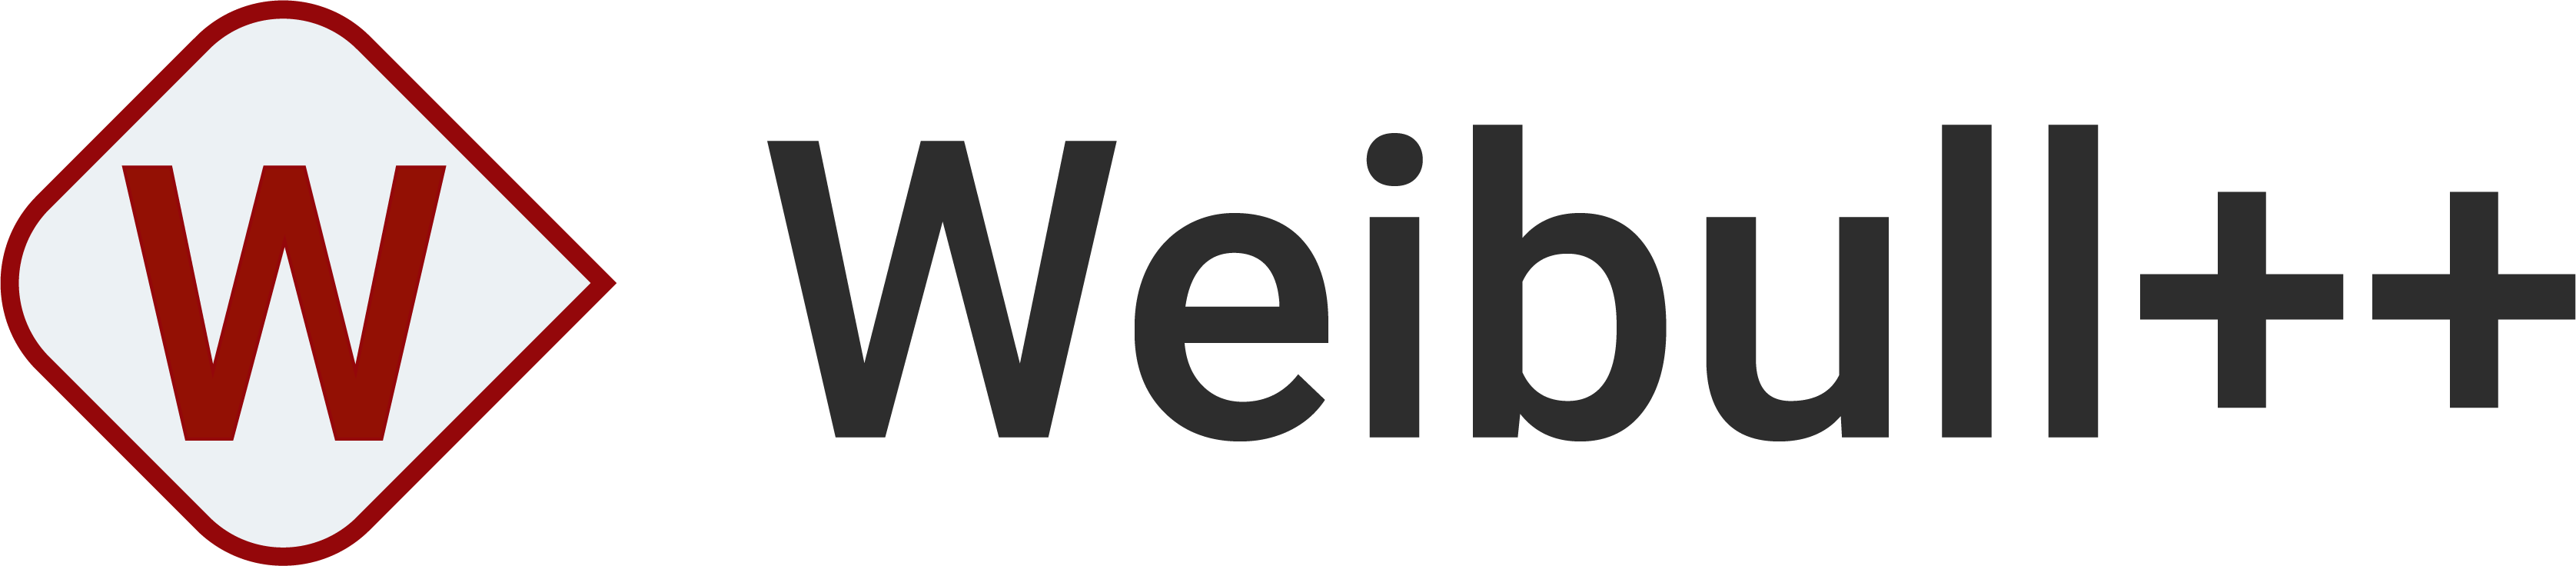 Weibull++ - software for life data analysis